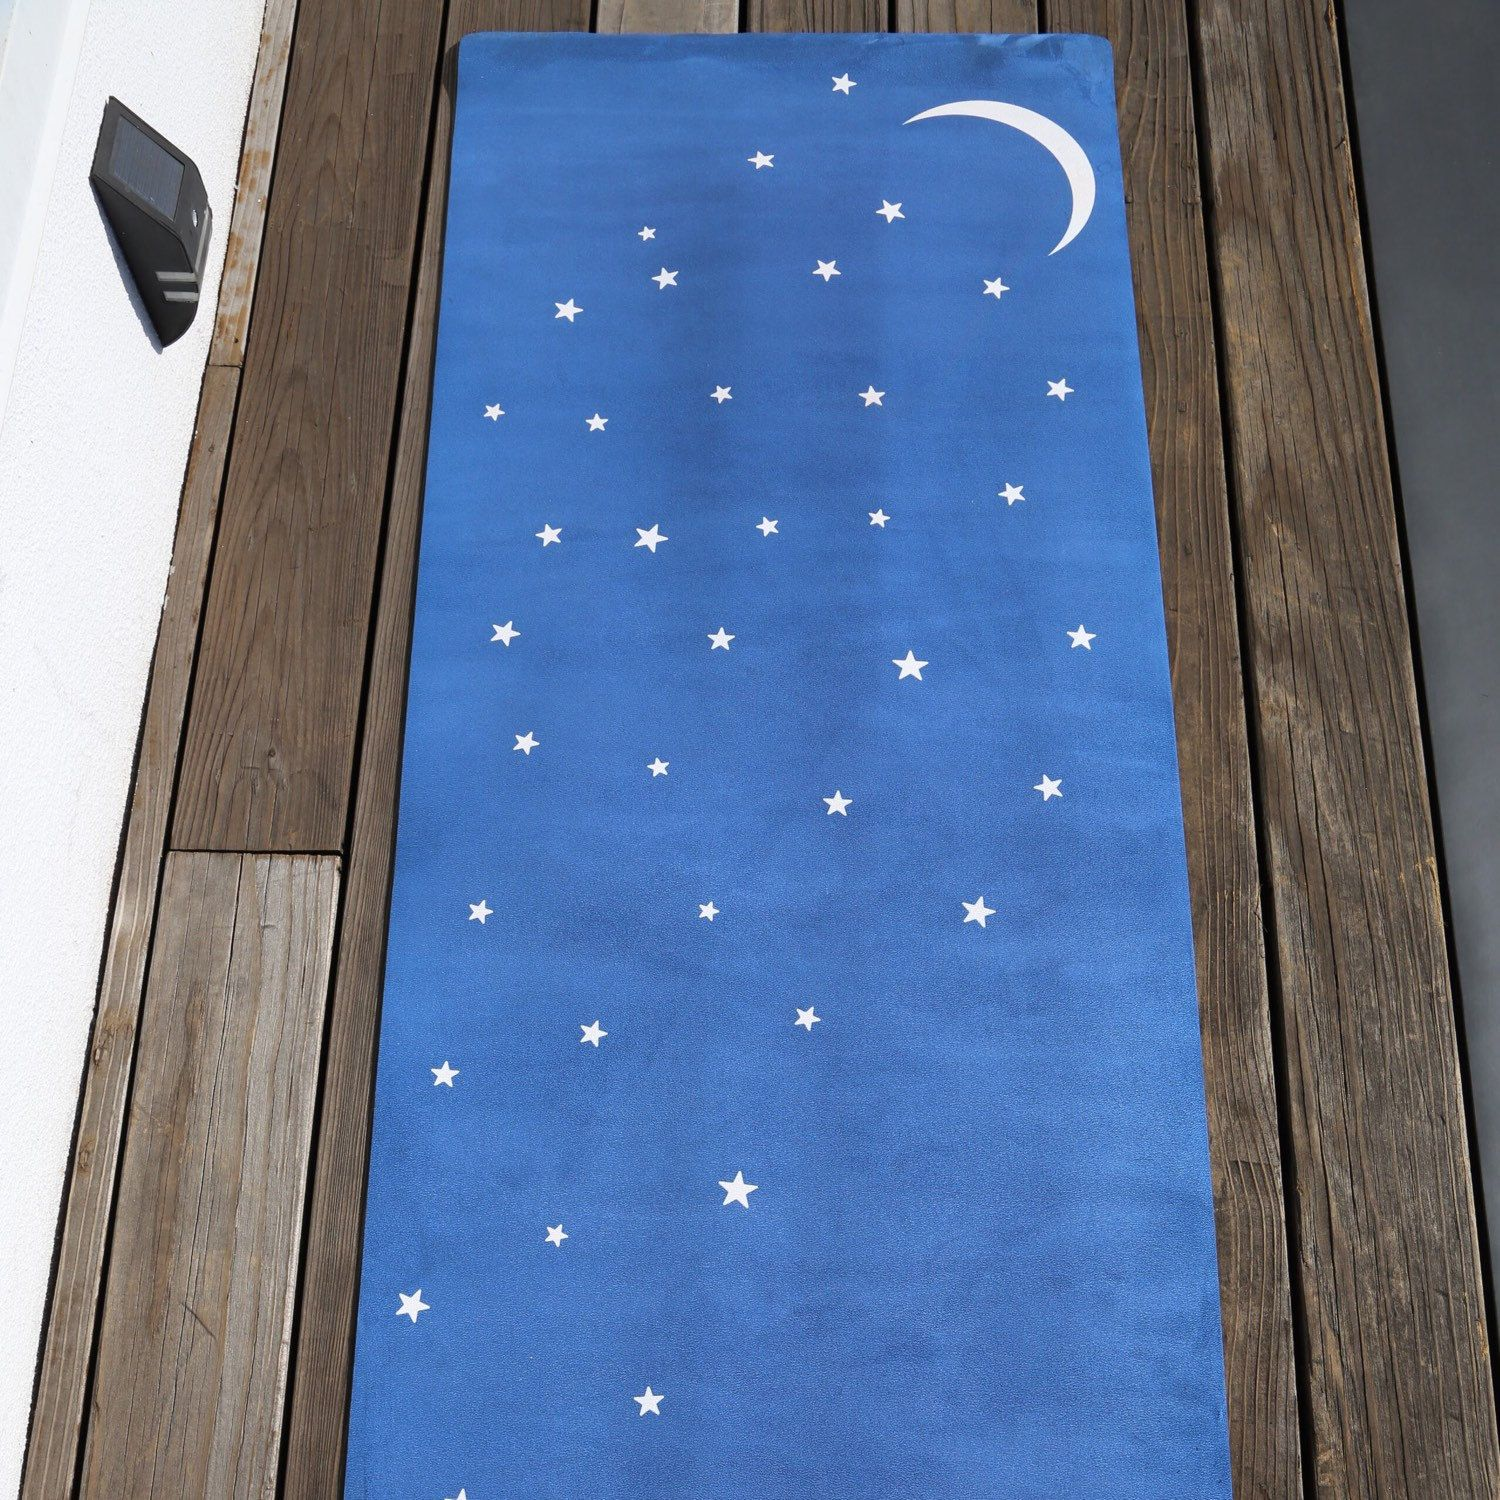 Moon And Stars Mat In Blue / Yoga Zeal / Gifts For Her